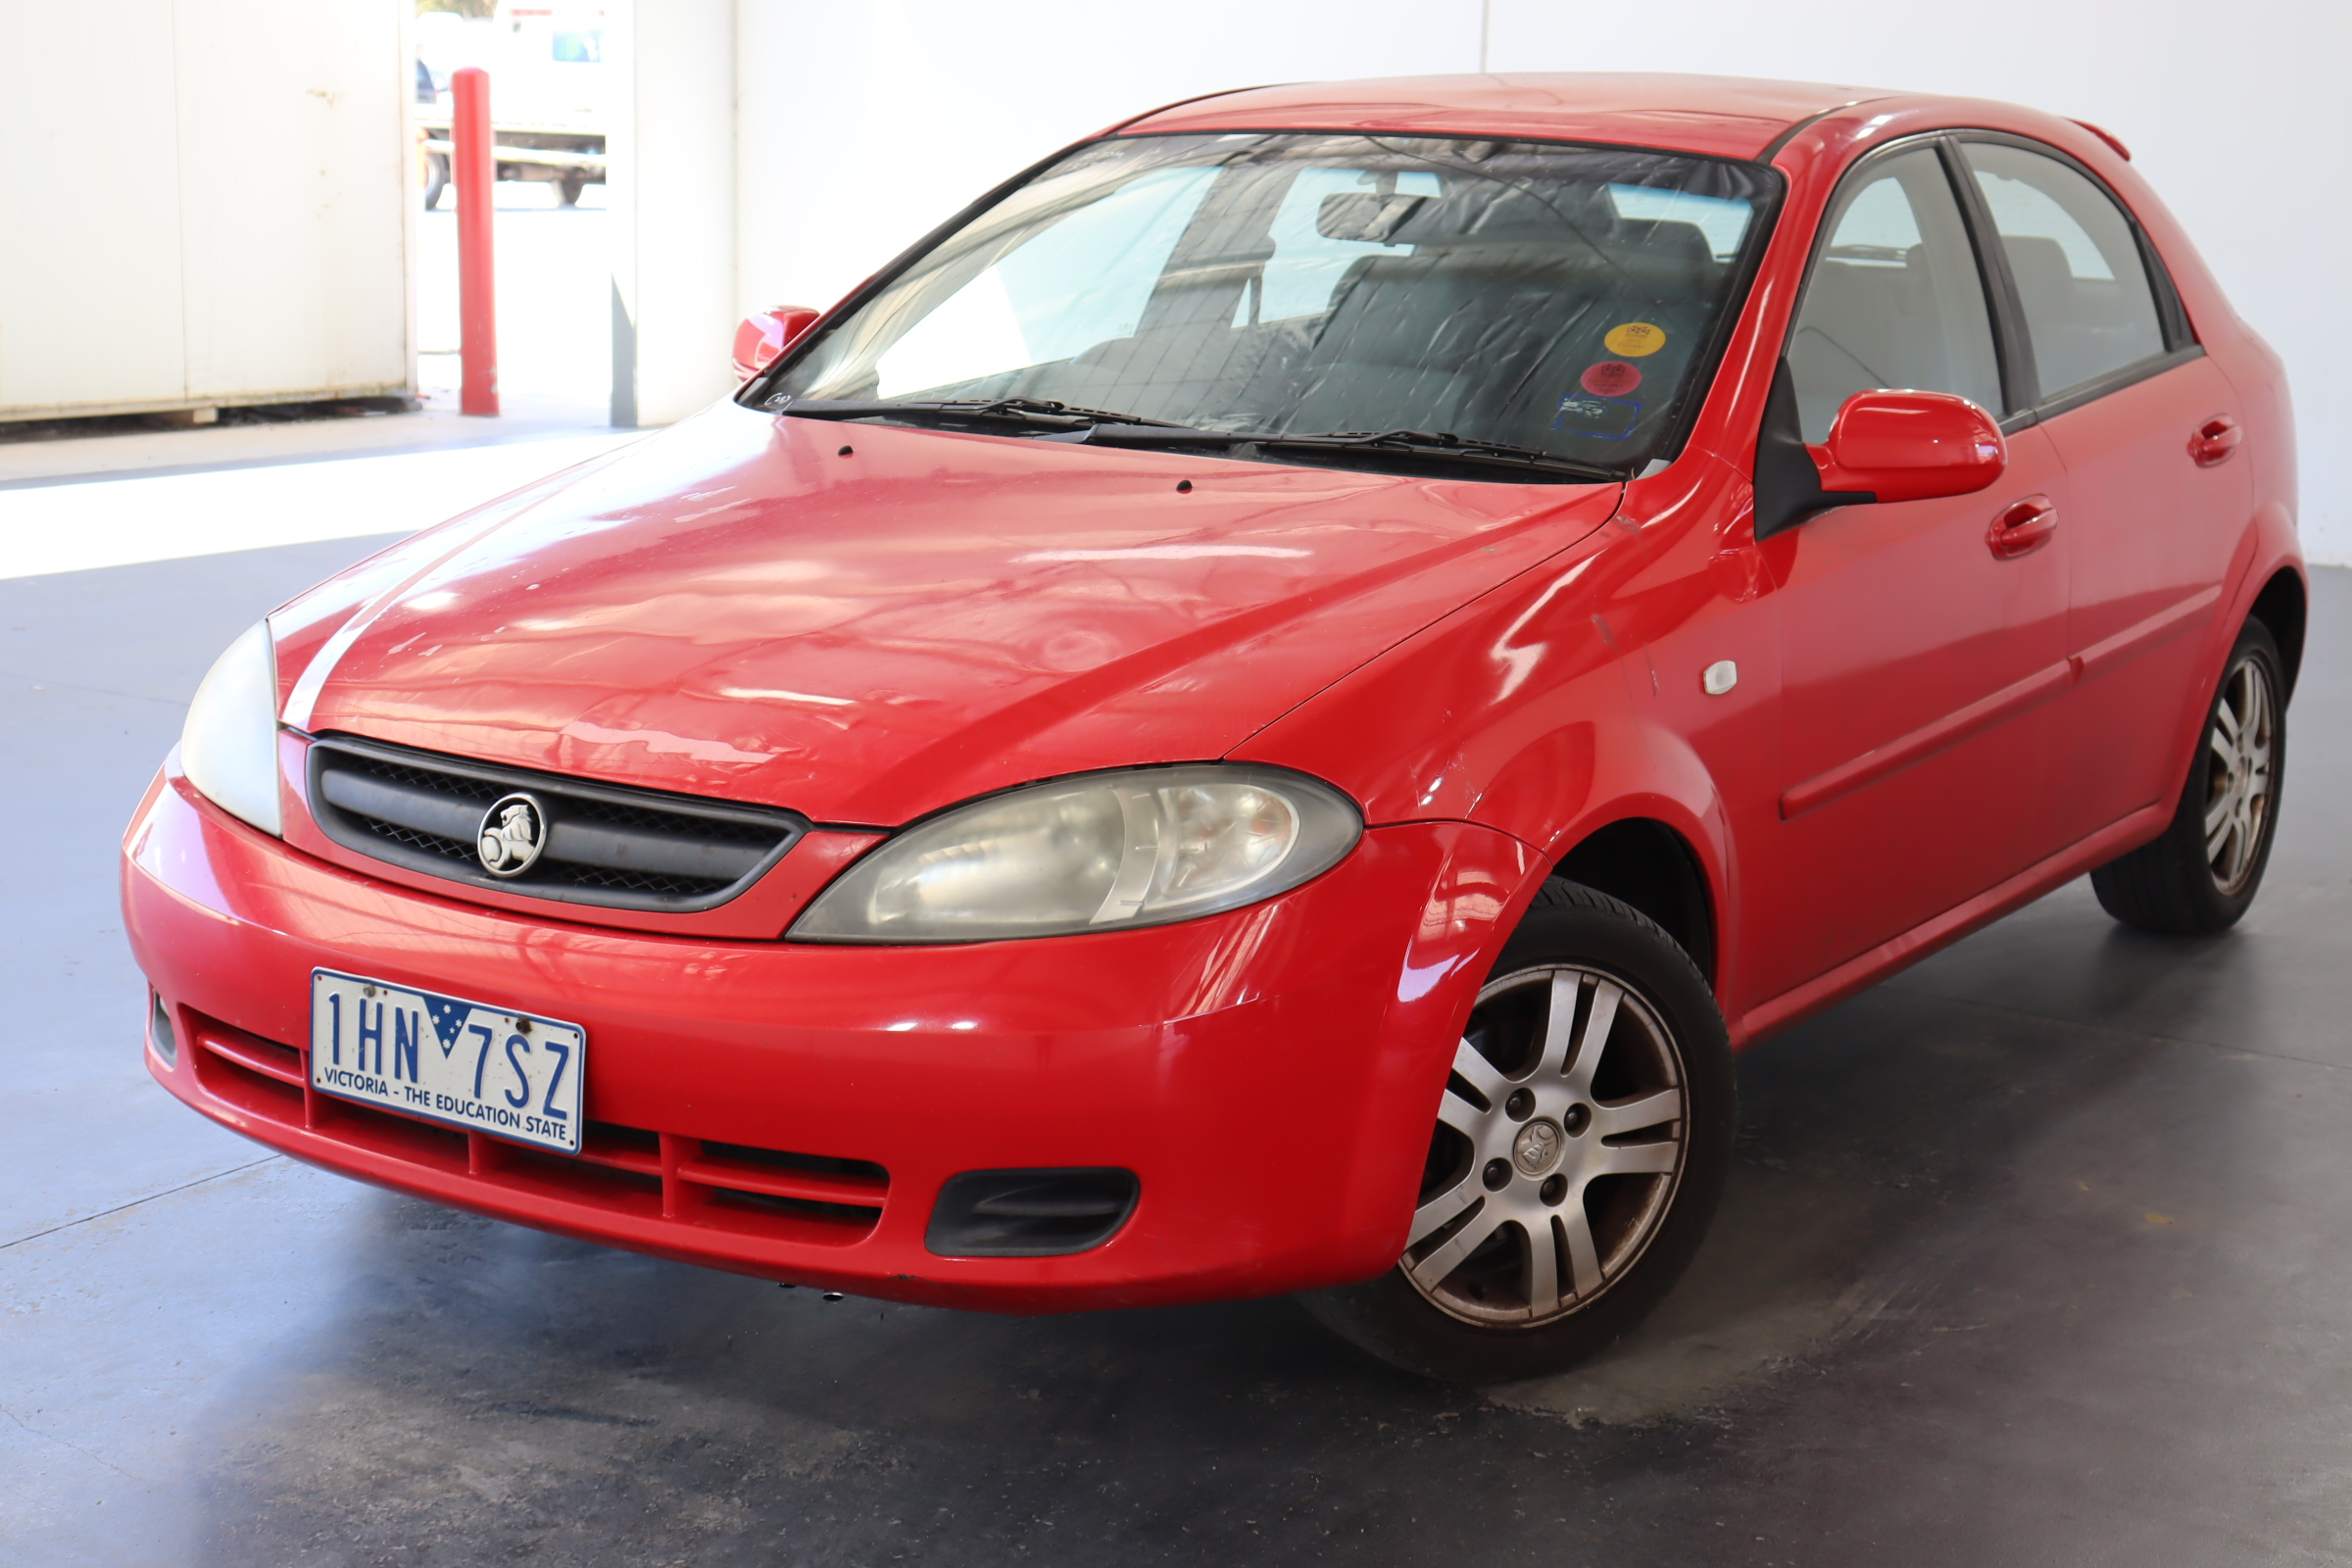 2008 Holden Viva JF Manual Hatchback (WOVR Inspected)